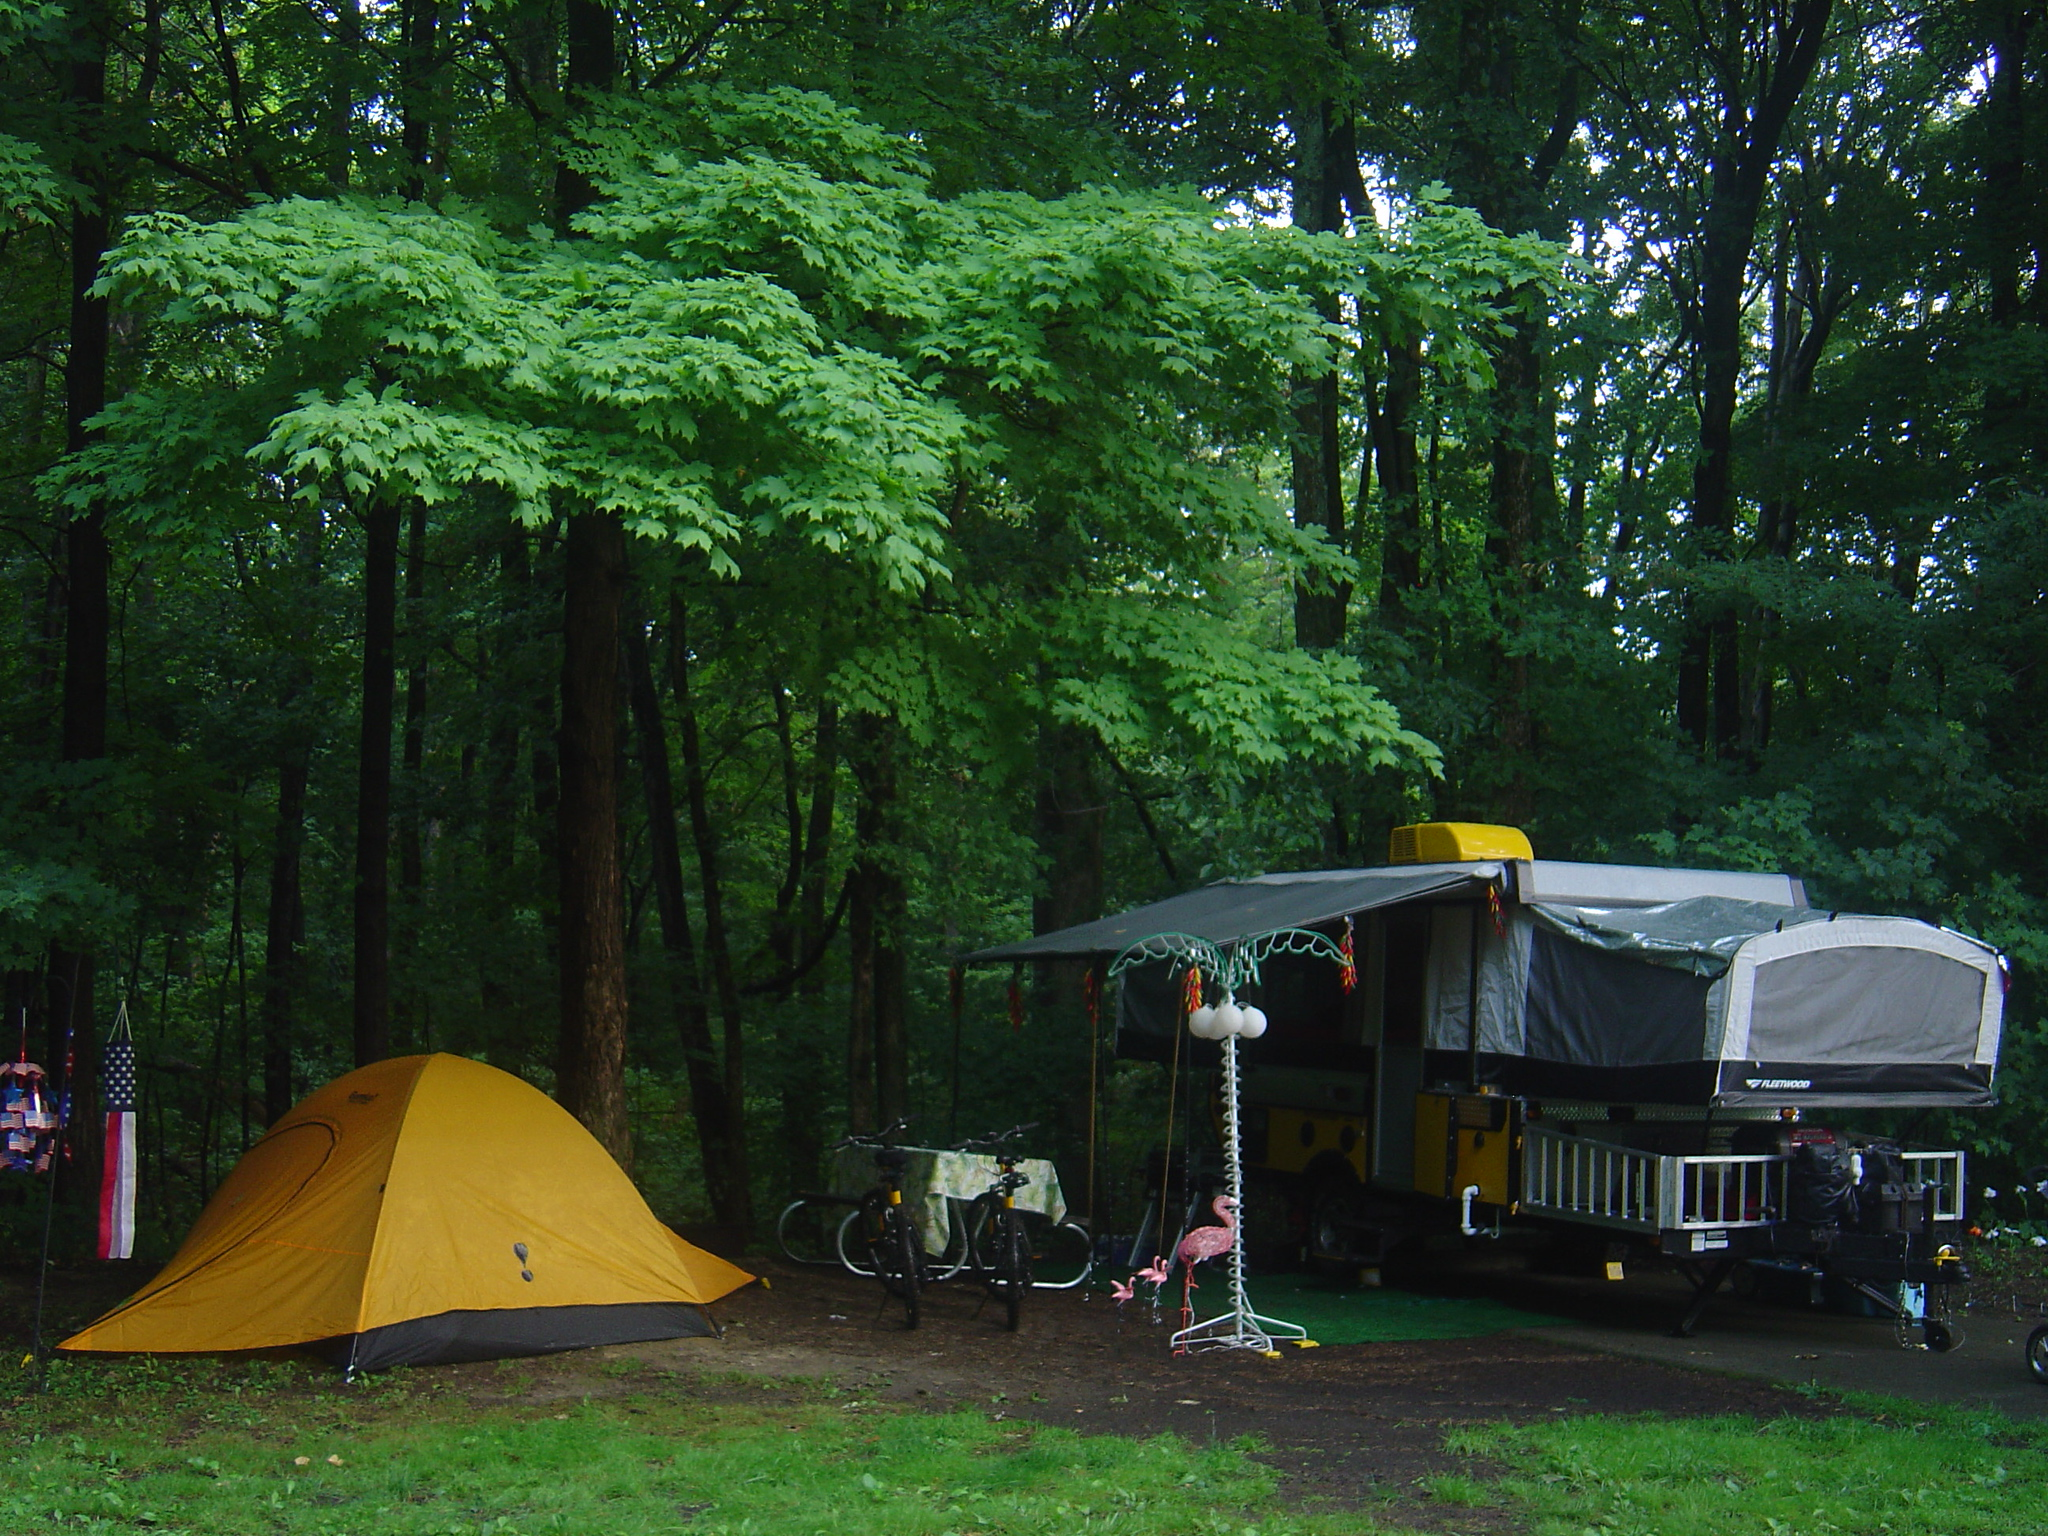 Here is my old tent that I used when my neices came camping with us at Lake Cowan, Ohio.